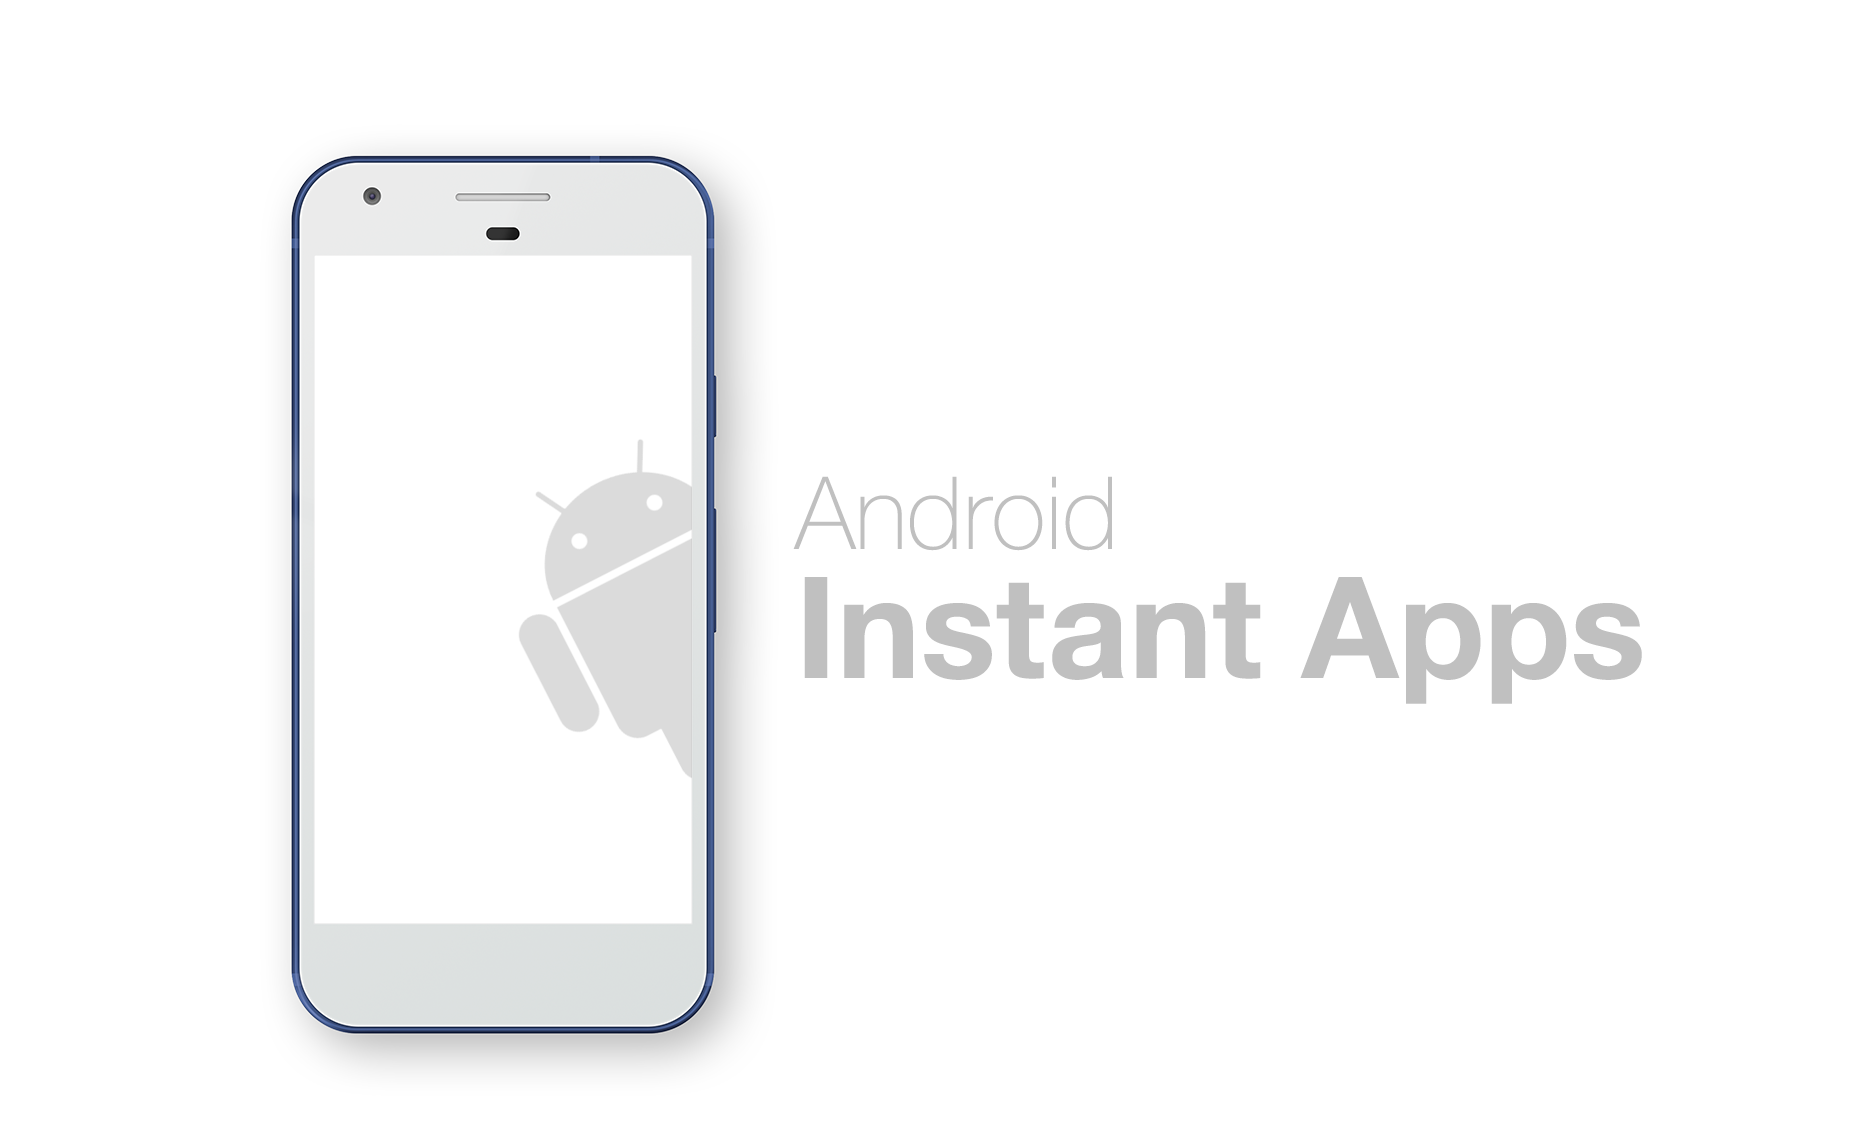 ANDROID INSTANT APPS: BRINGING ABOUT A CHANGE IN MOBILE APP DEVELOPMENT